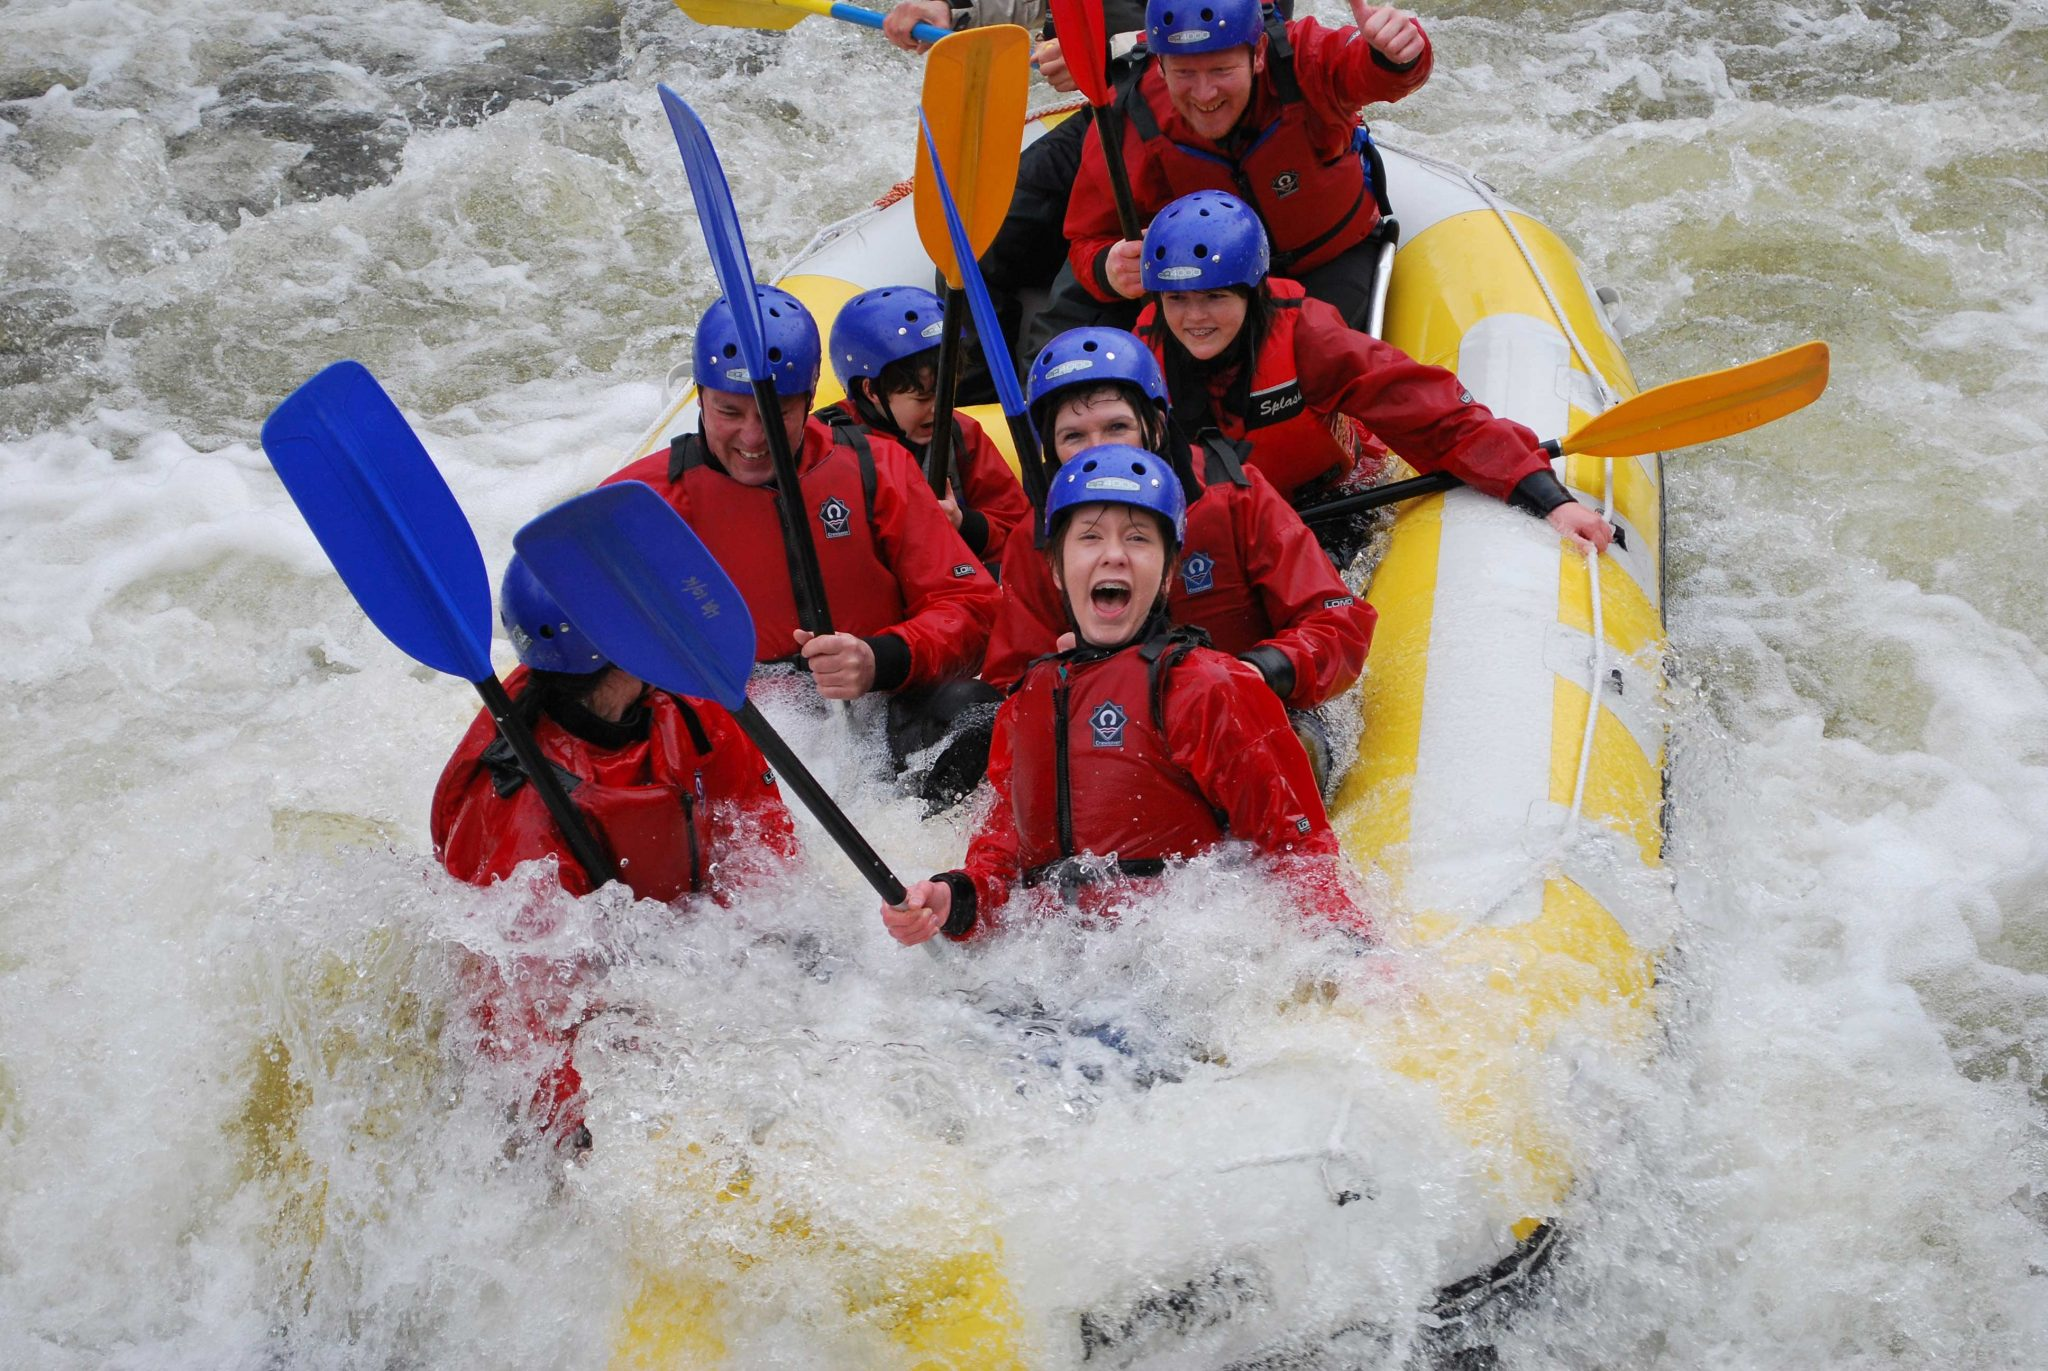 White Water Rafting Voucher